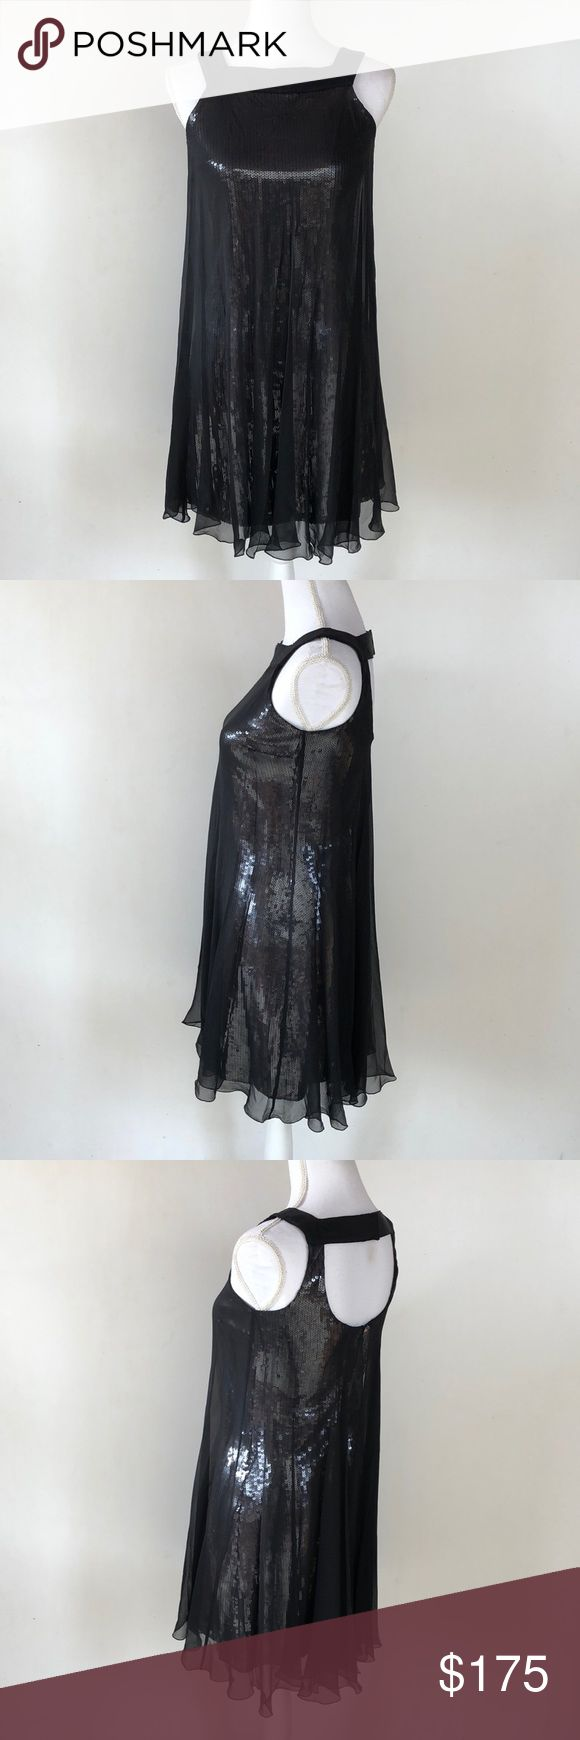 Elie Tahari 100% Silk & Sequin Cocktail Dress, 0 This insanely gorgeous Elie Tahari 100% Silk & Sequin Cocktail Dress, 0 is the PERFECT holiday party dress!! This has NEW YEARS EVE written allllll over it 😍 EXCELLENT CONDITION, NO DEFECTS Elie Tahari Dresses Midi